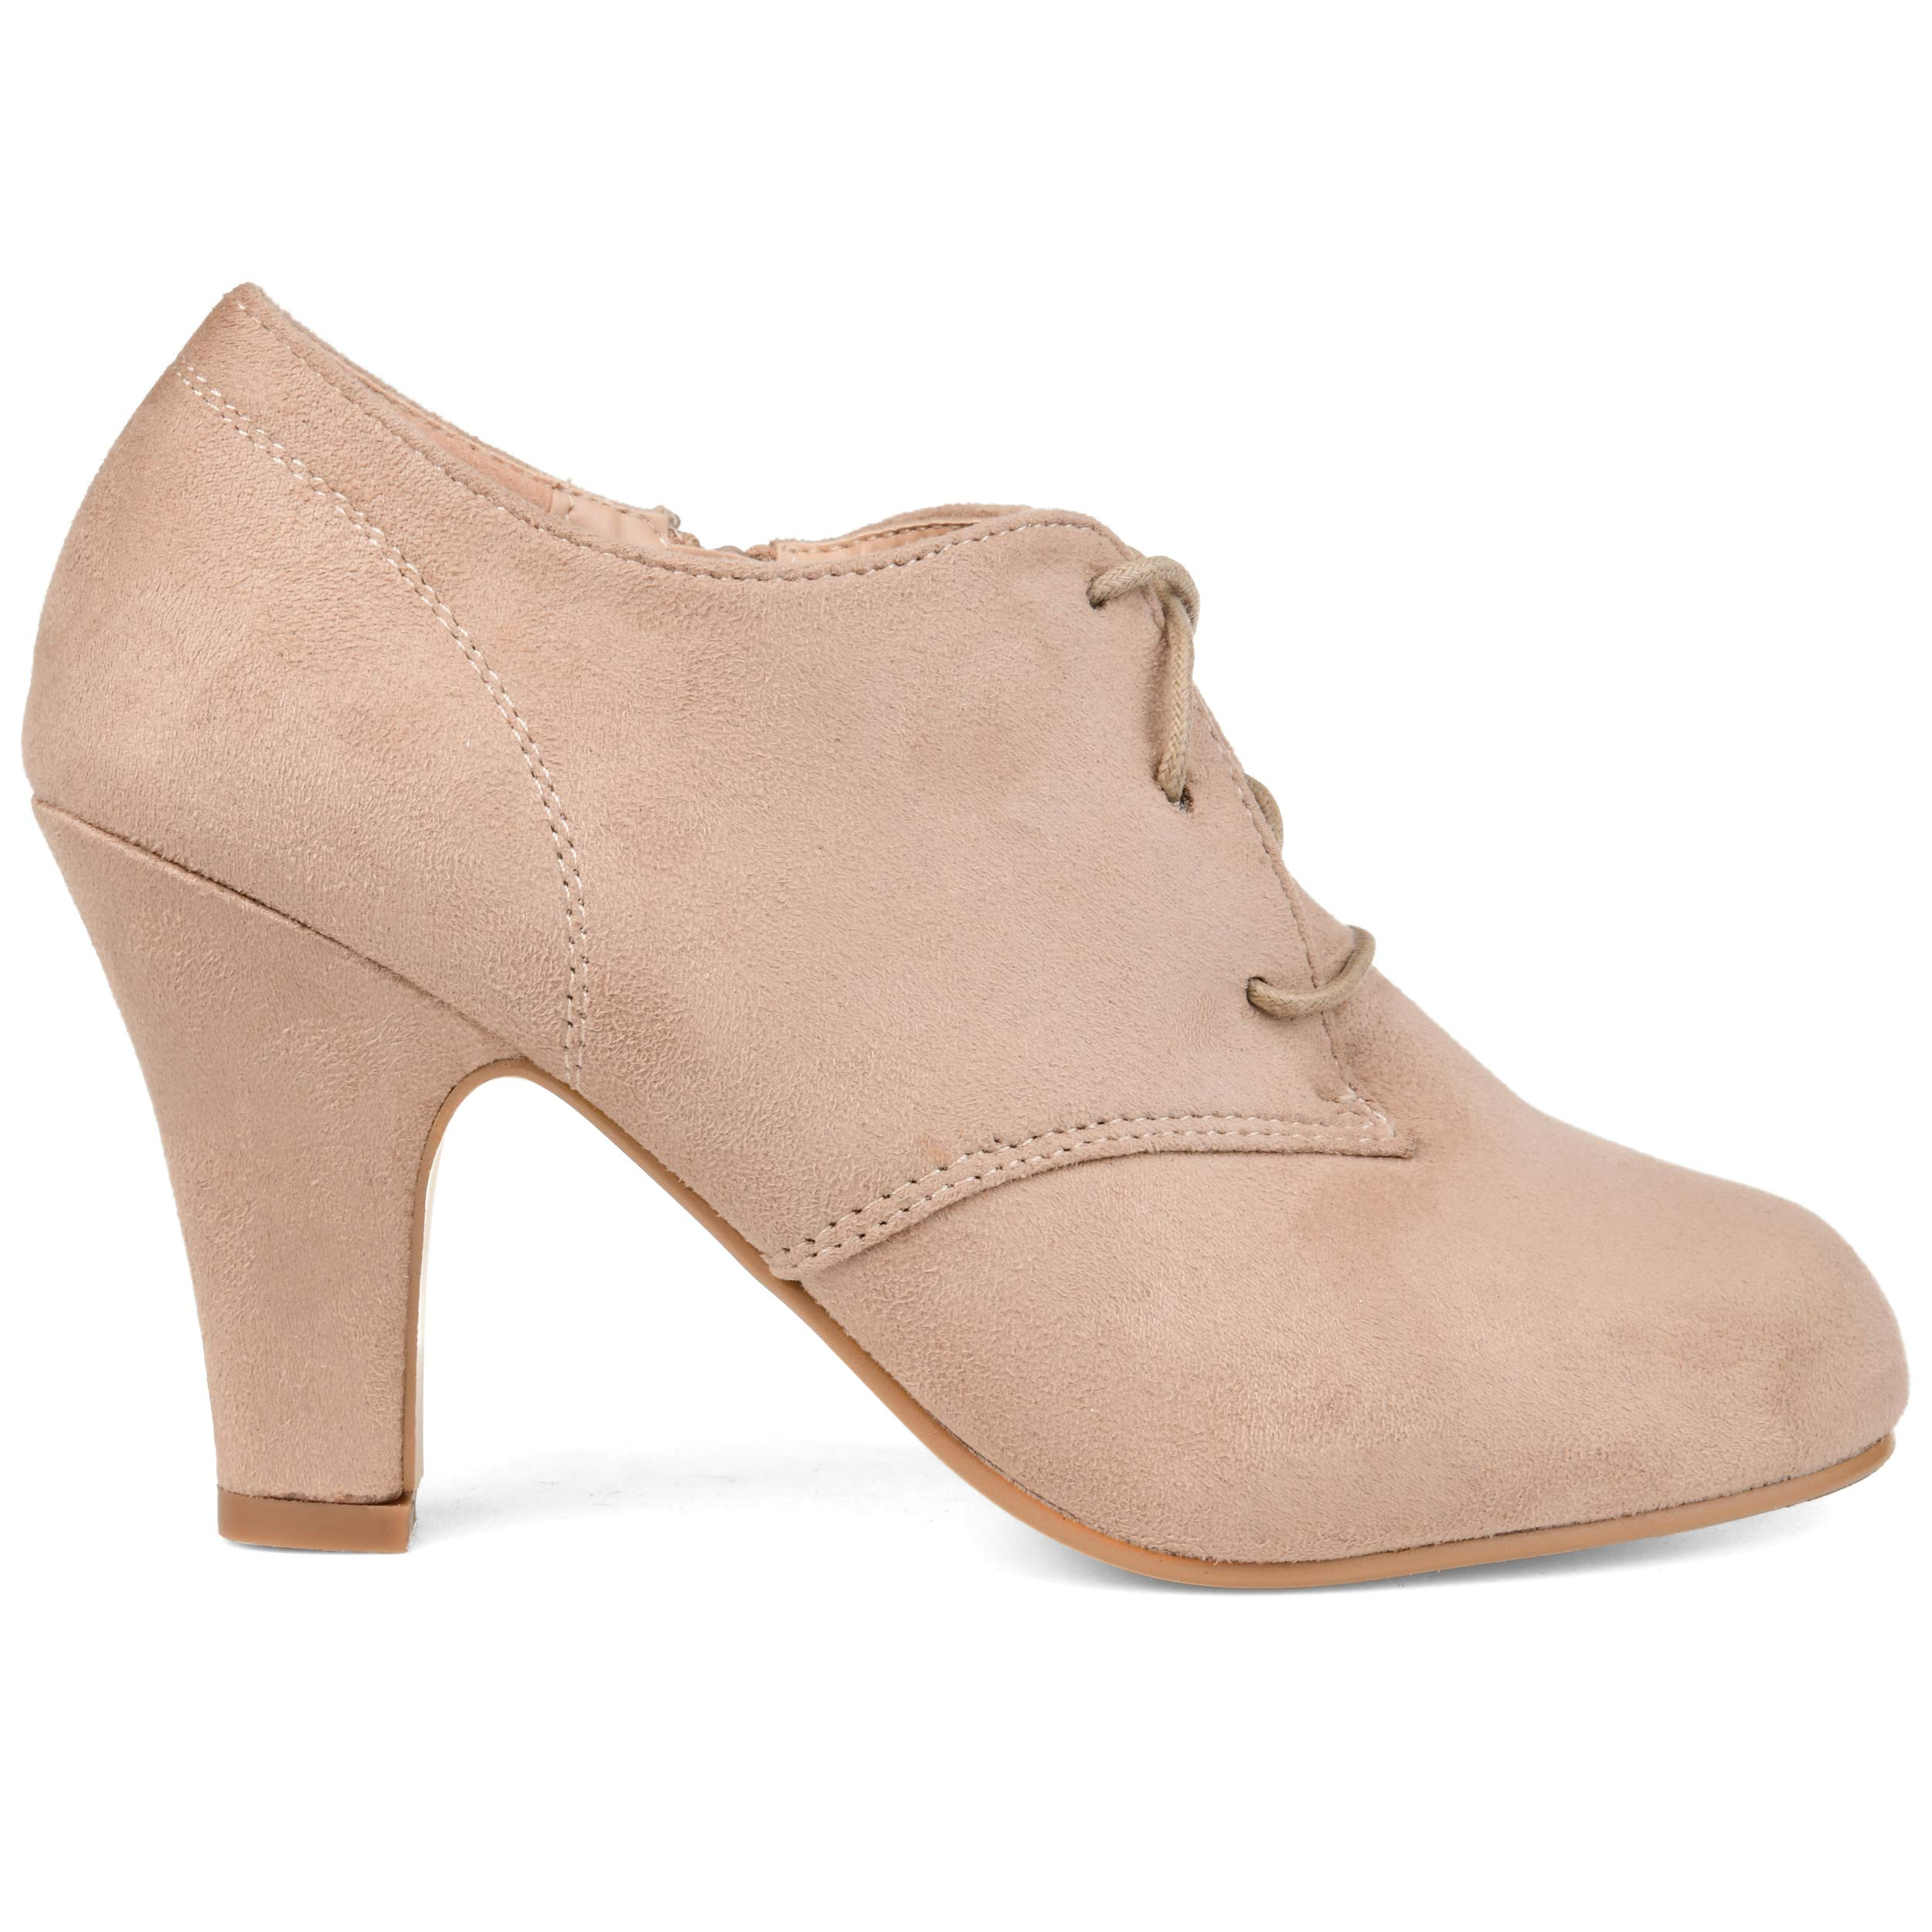 Brinley Co. Womens Vintage Round Toe High Heel Lace-up Faux Suede Booties Taupe, 7 Wide US